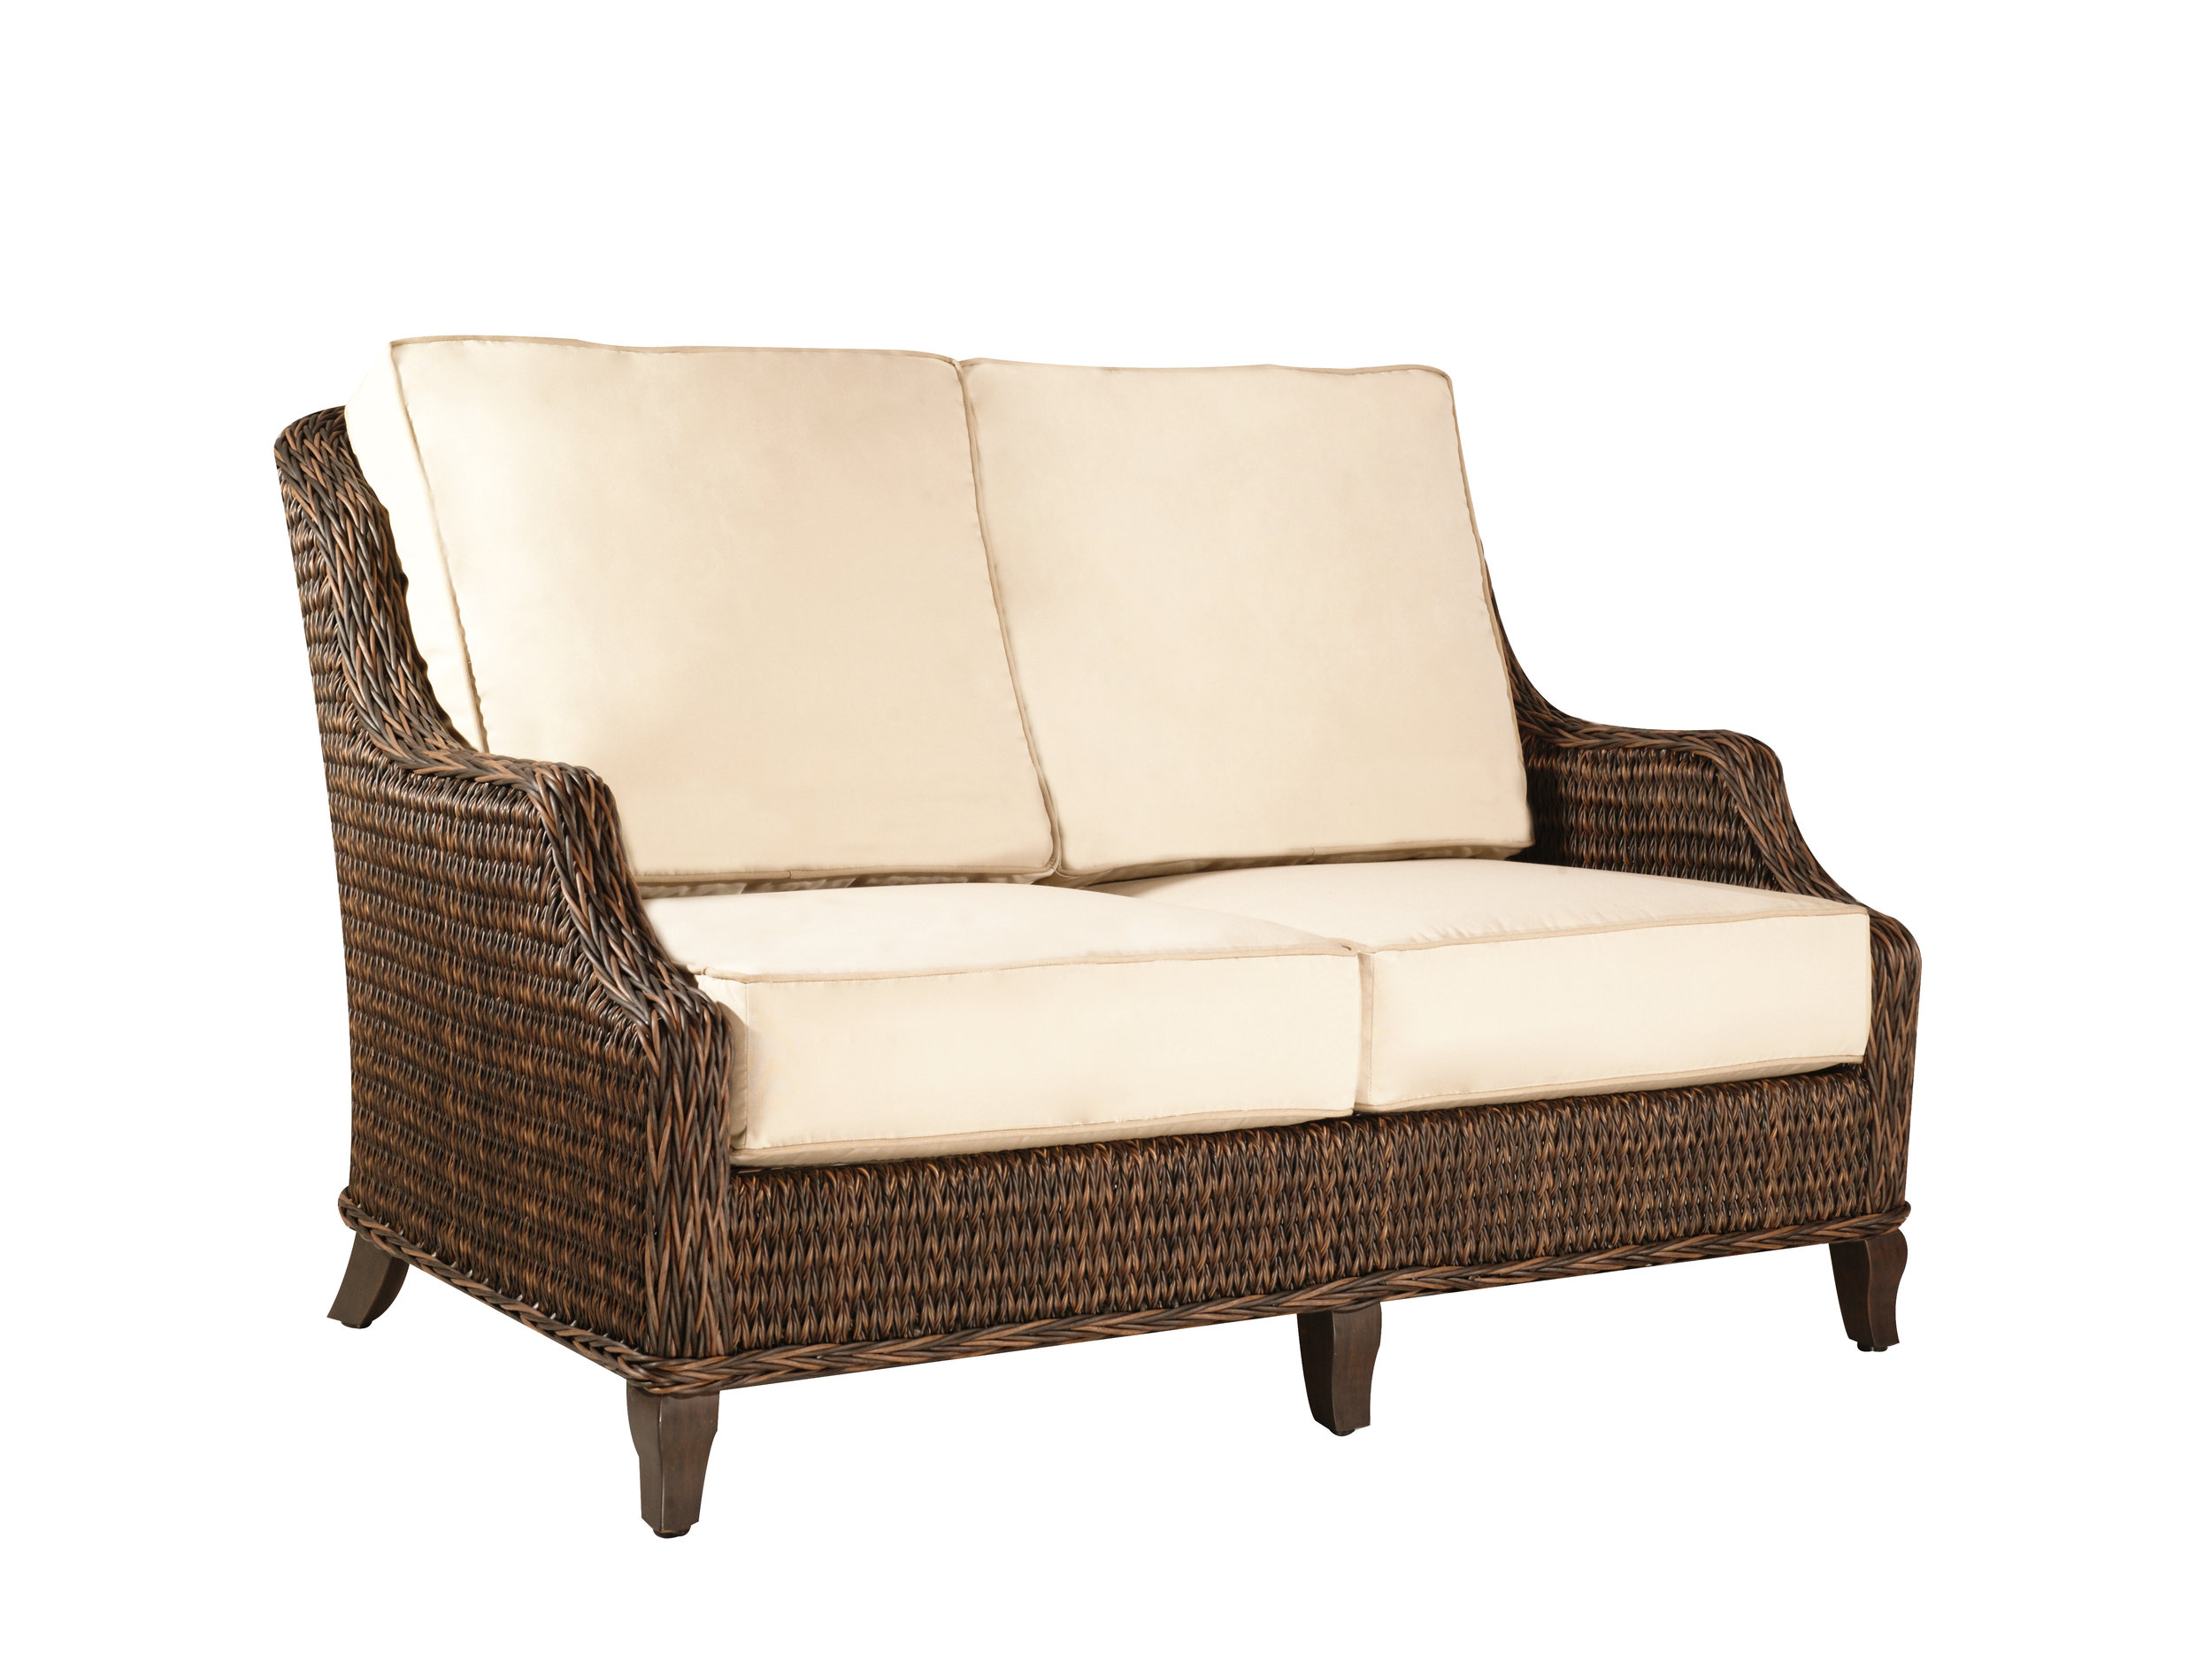 "973061 Monticello Loveseat   57"" x 40.2"" x 36.2"""